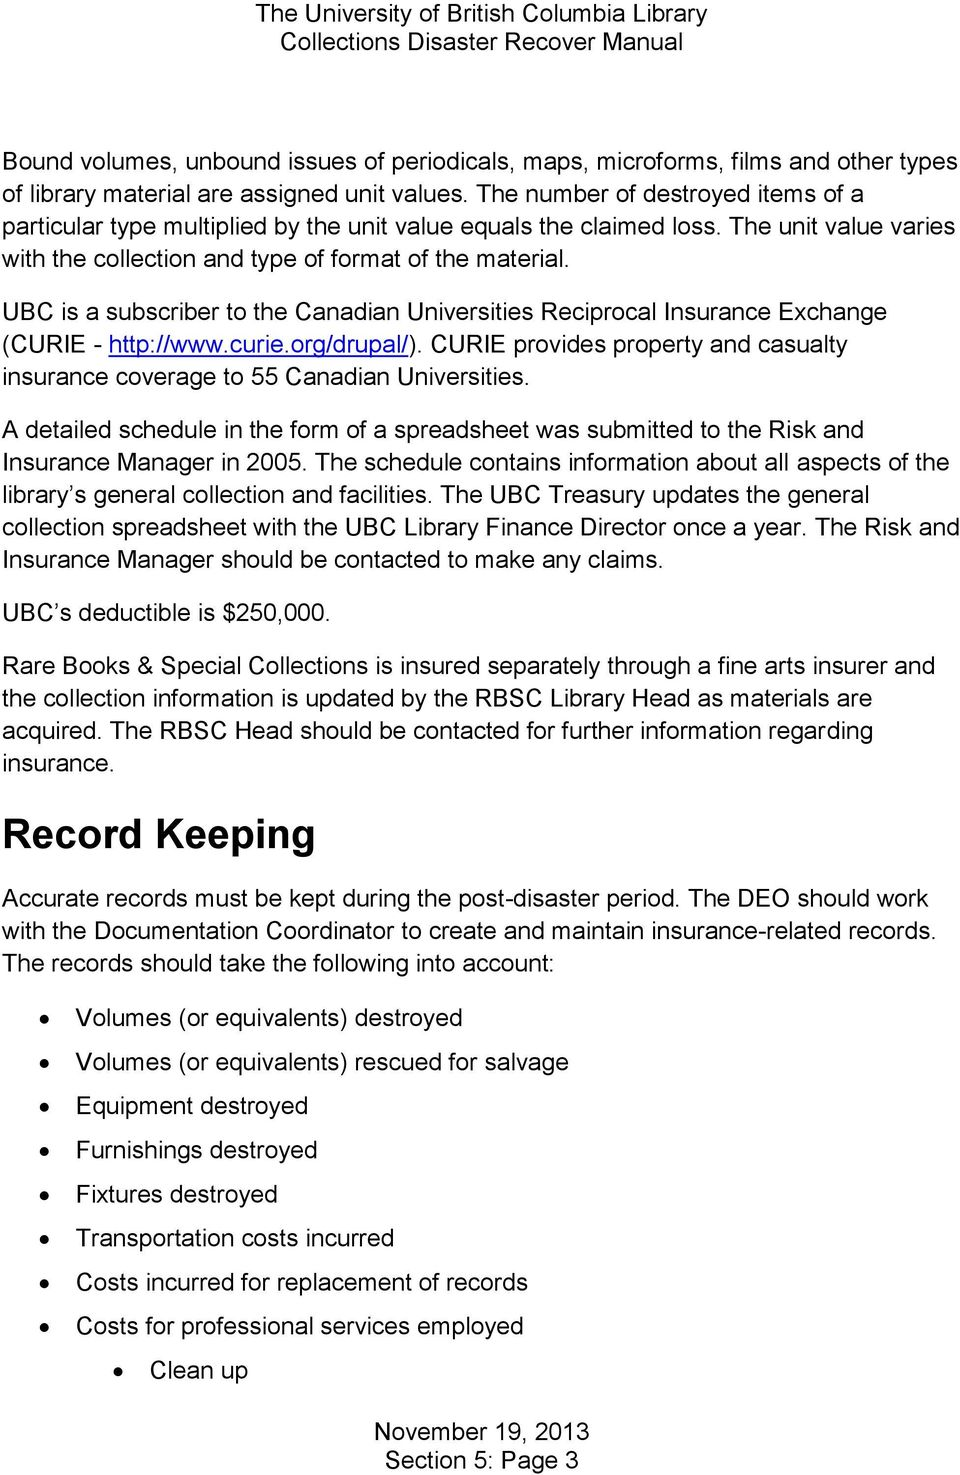 UBC is a subscriber to the Canadian Universities Reciprocal Insurance Exchange (CURIE - http://www.curie.org/drupal/).